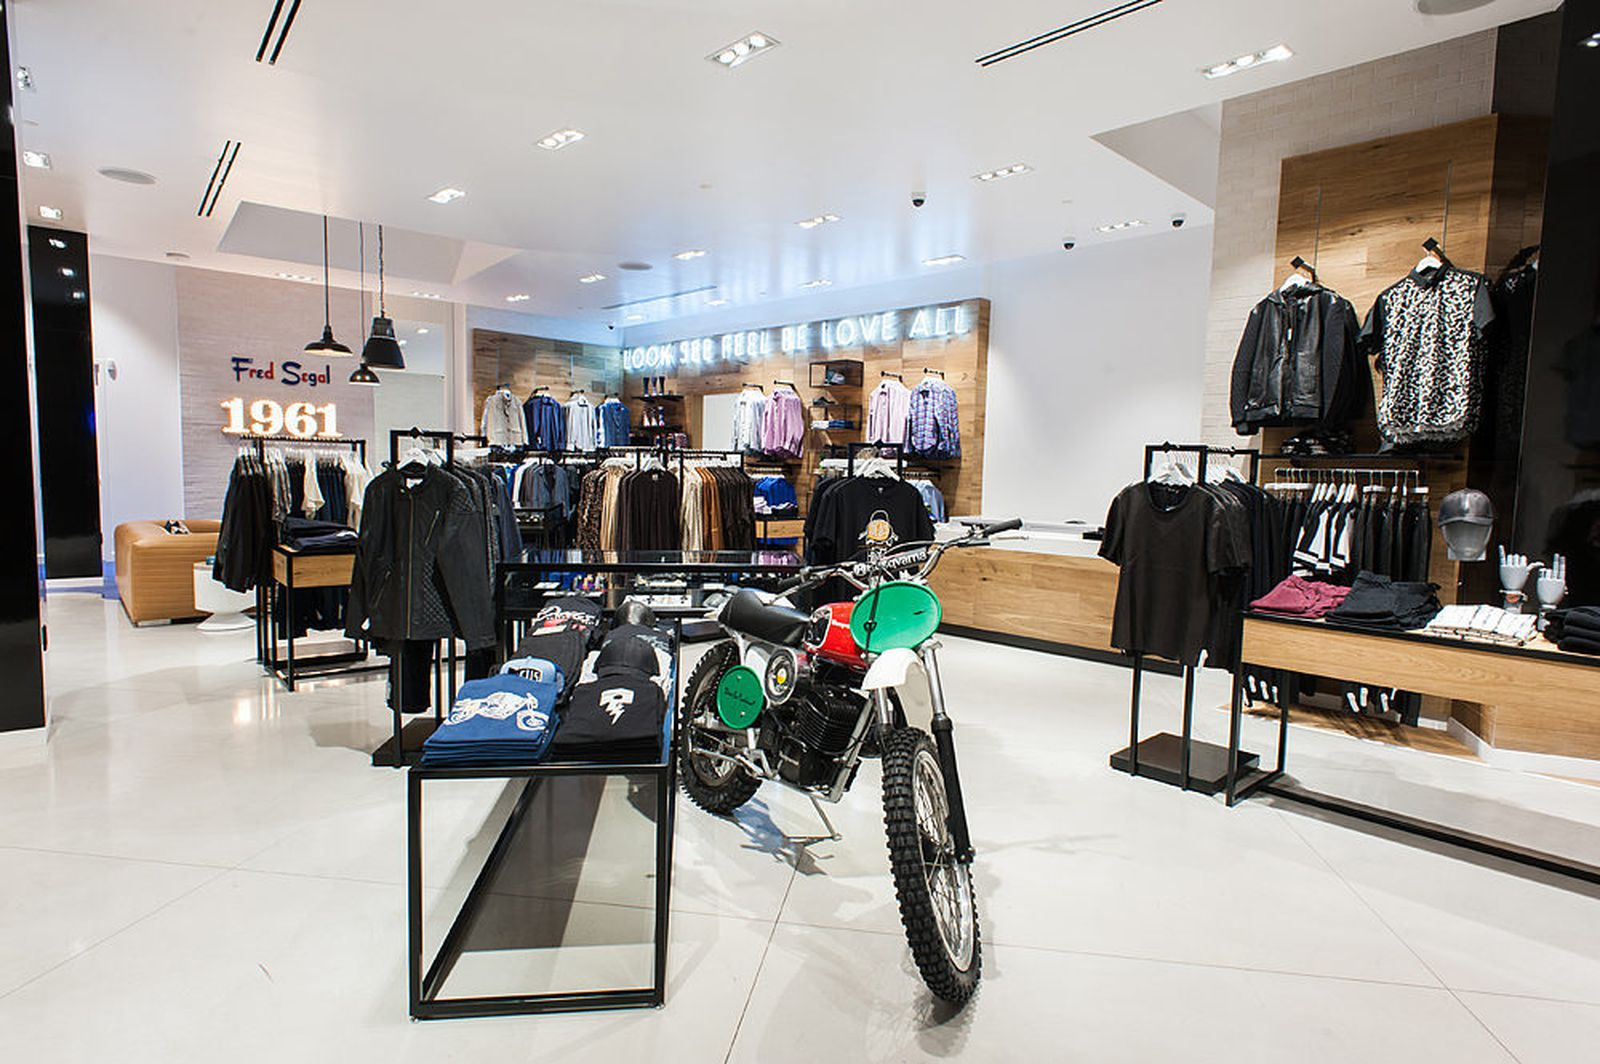 Where The Guys Can Shop At Sls Las Vegas Fred Segal He